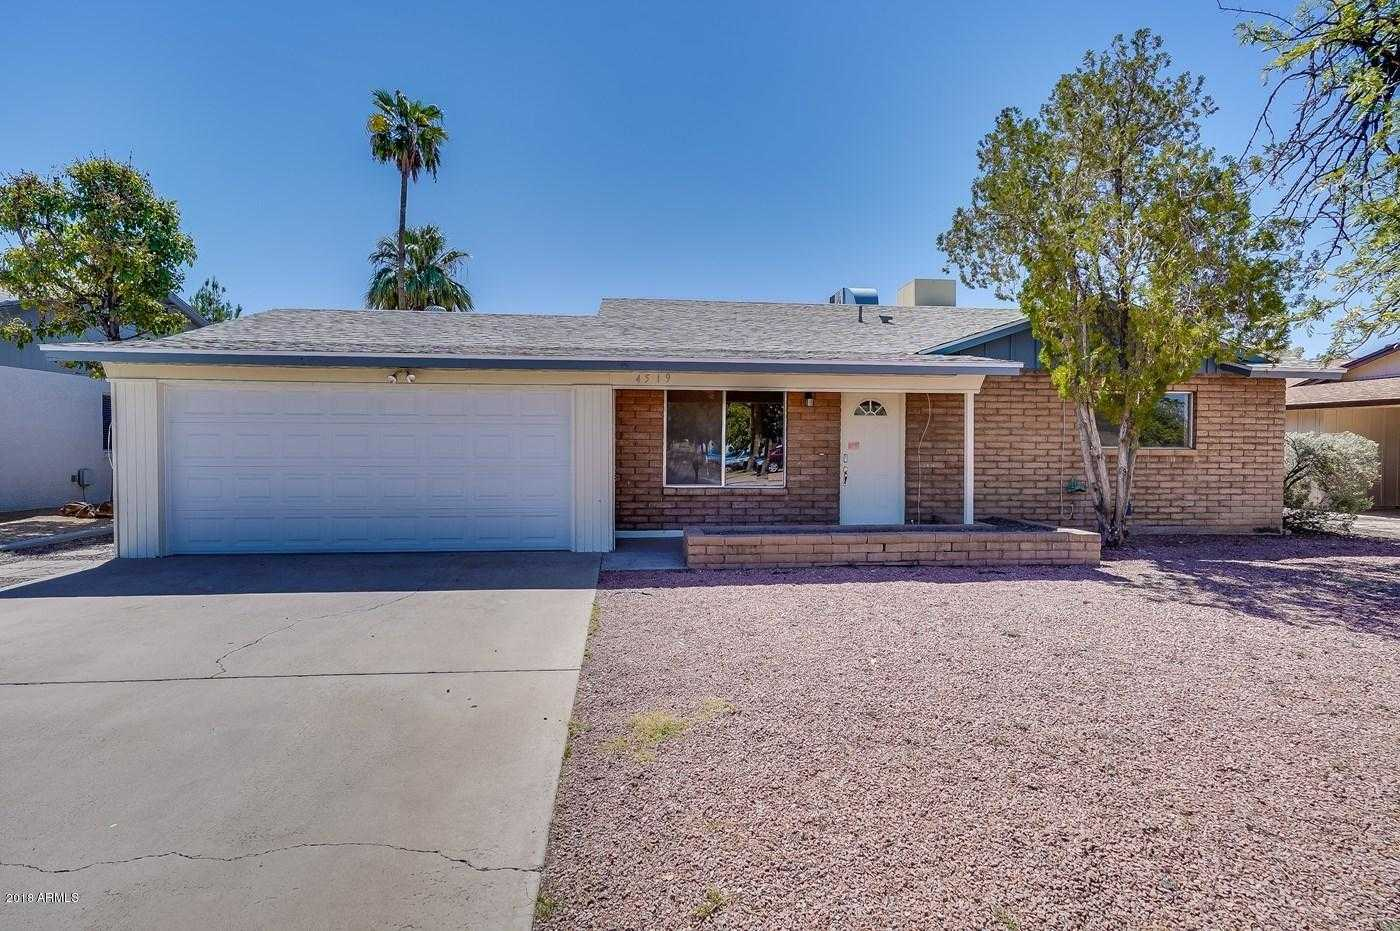 $233,900 - 3Br/2Ba - Home for Sale in Continental, Glendale